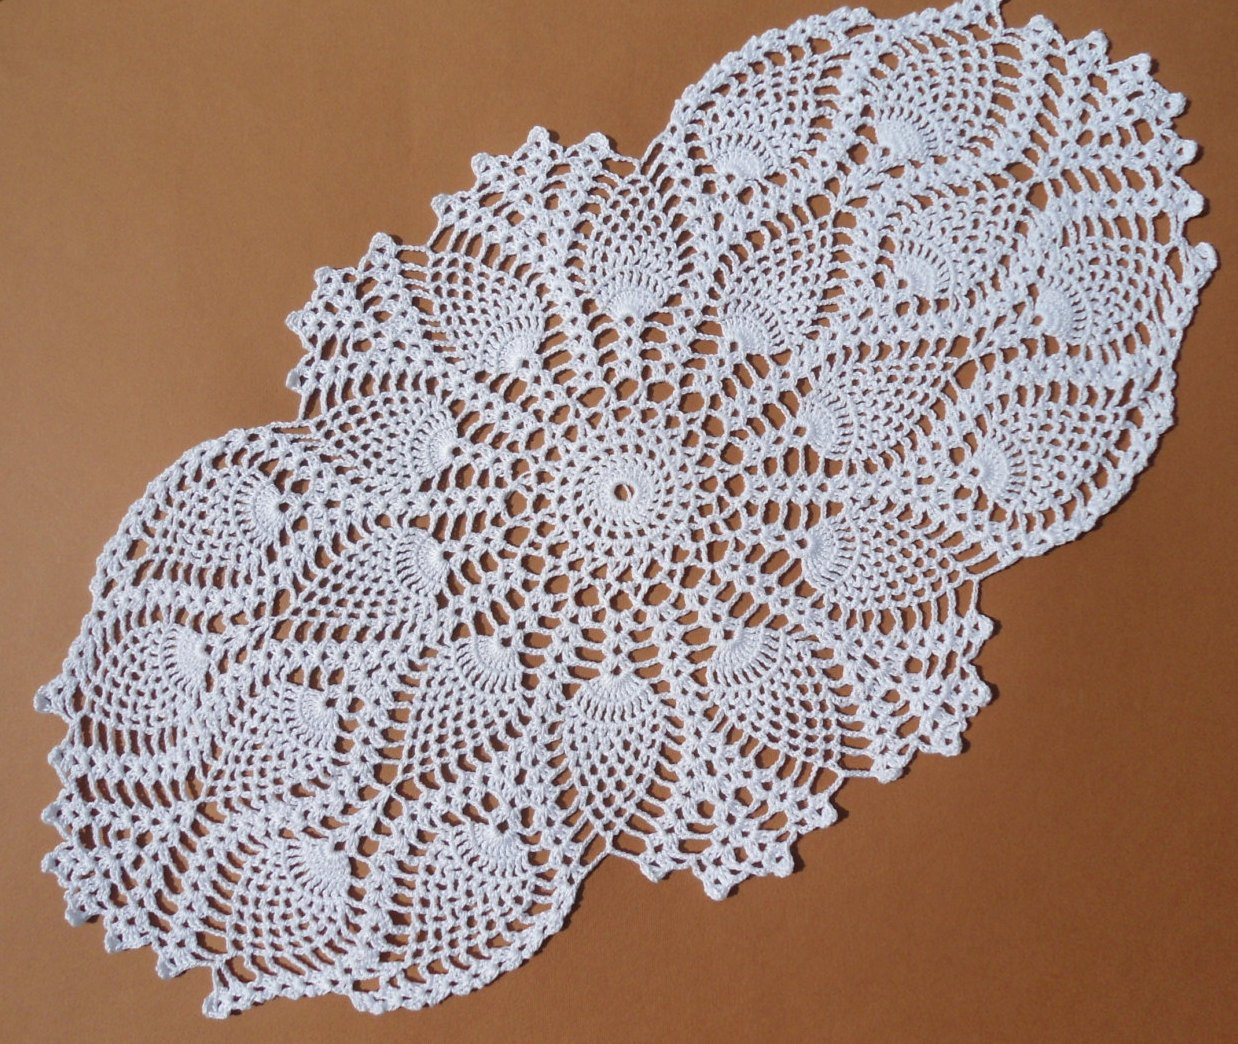 Crochet Name Doily Luxury White Crochet Doily Oval Crochet Doily Pineapple Doilies Of Lovely 45 Images Crochet Name Doily